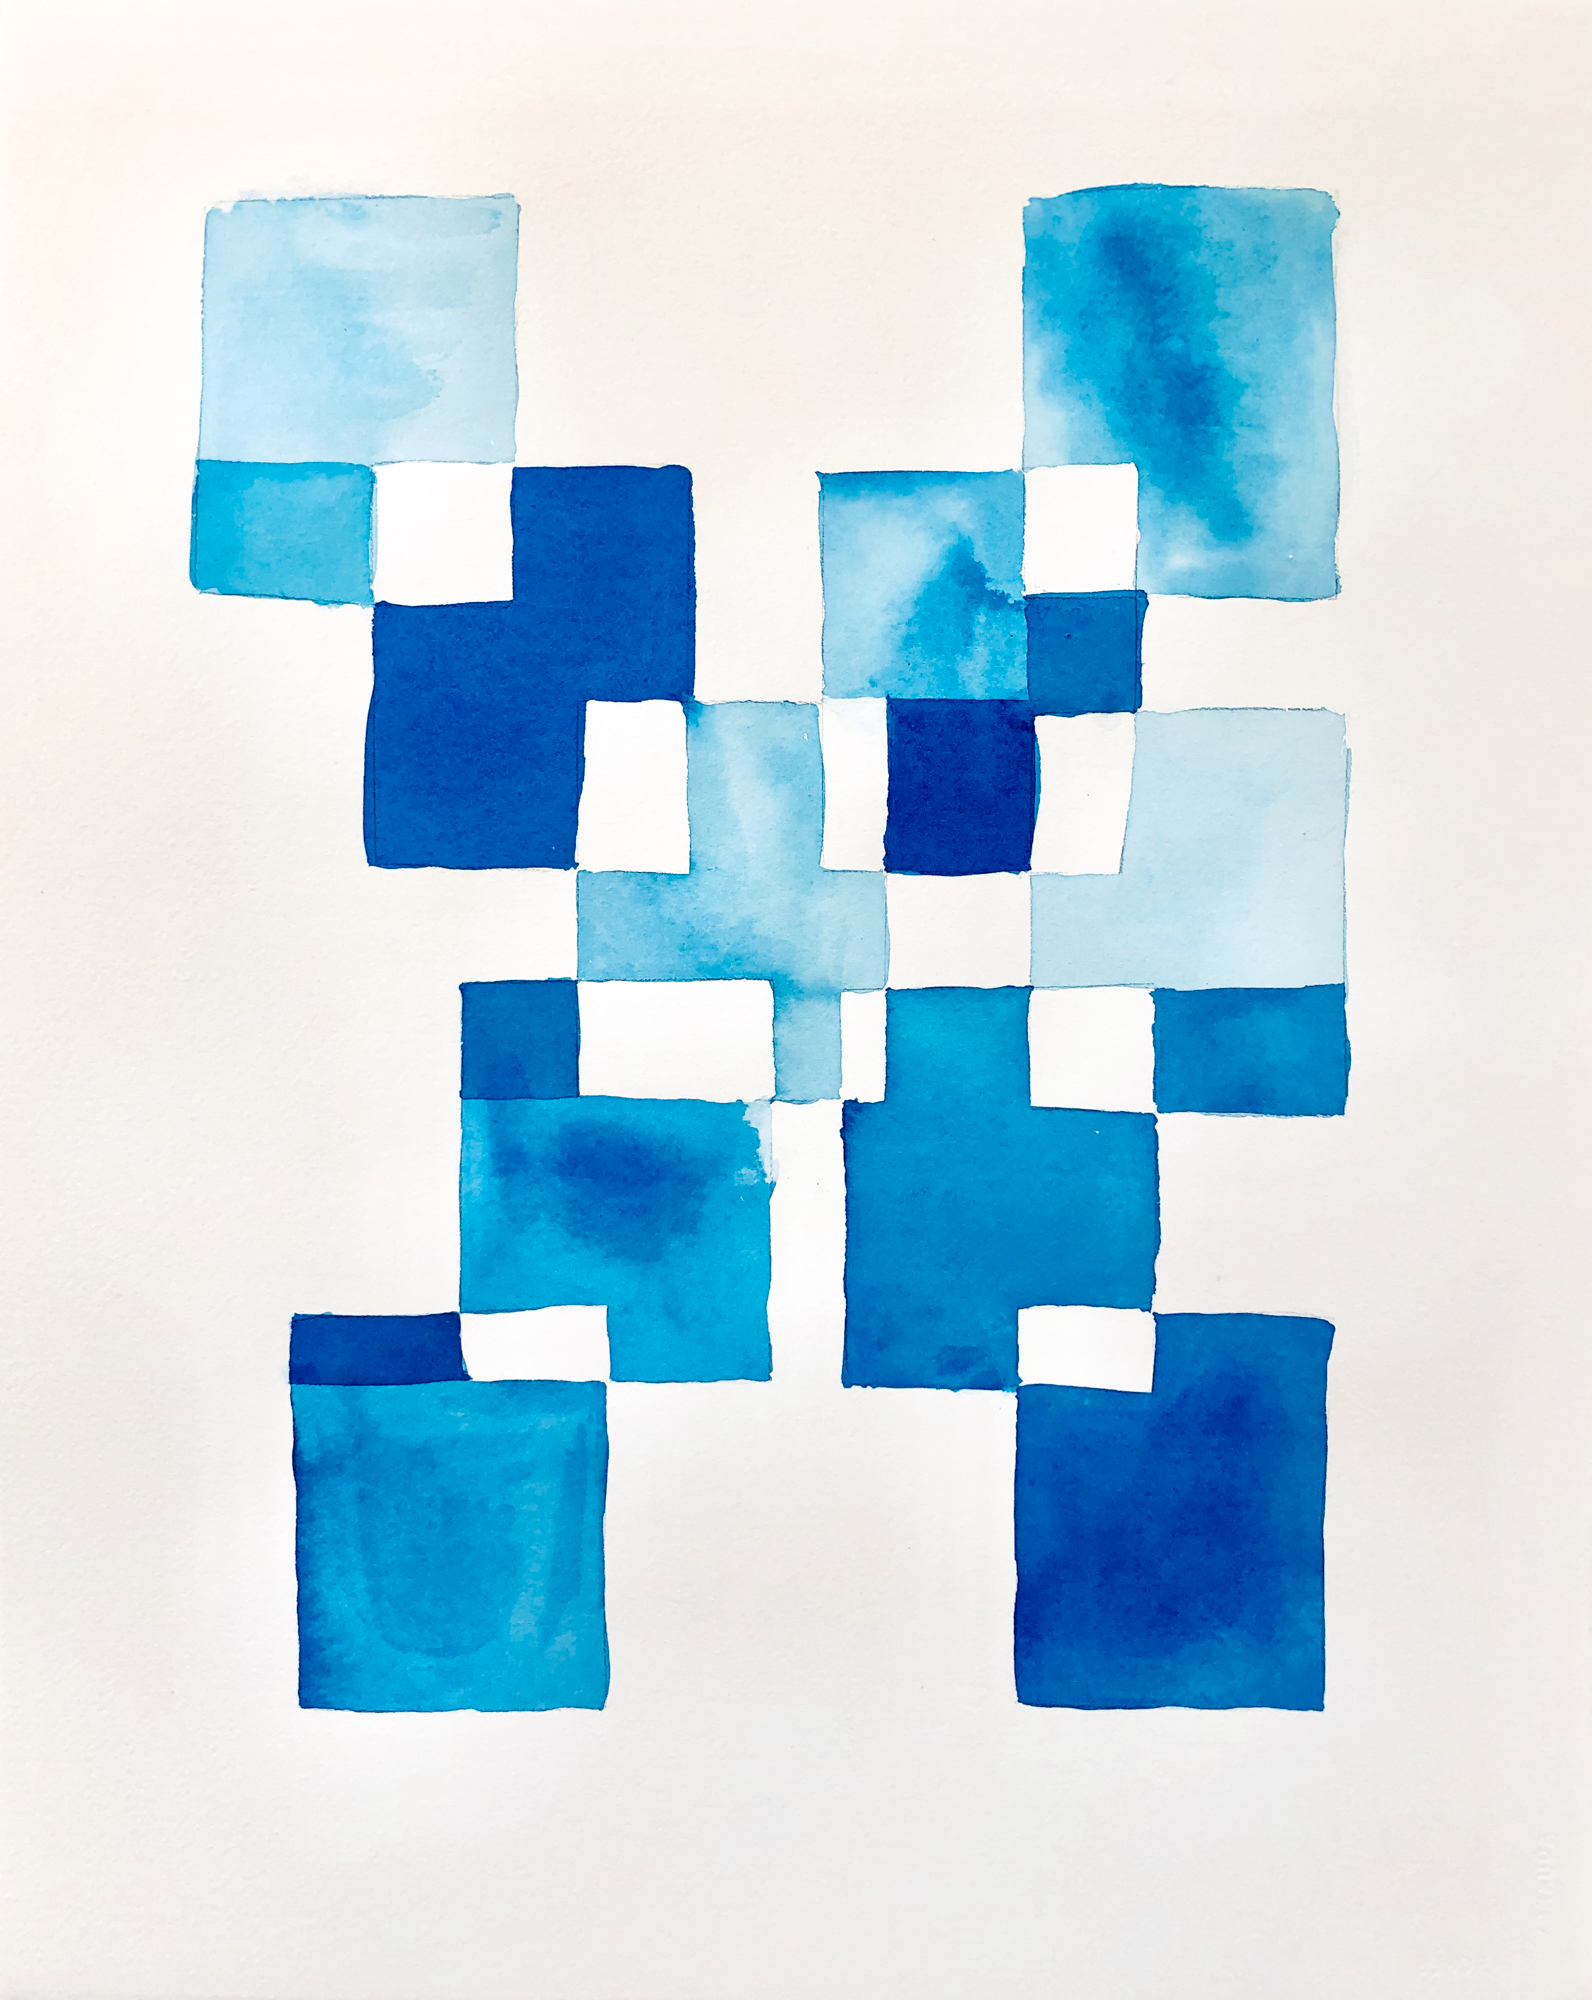 Blue Geometry 2, 2019, mixed media on paper, 16 x 20 in, $3,000